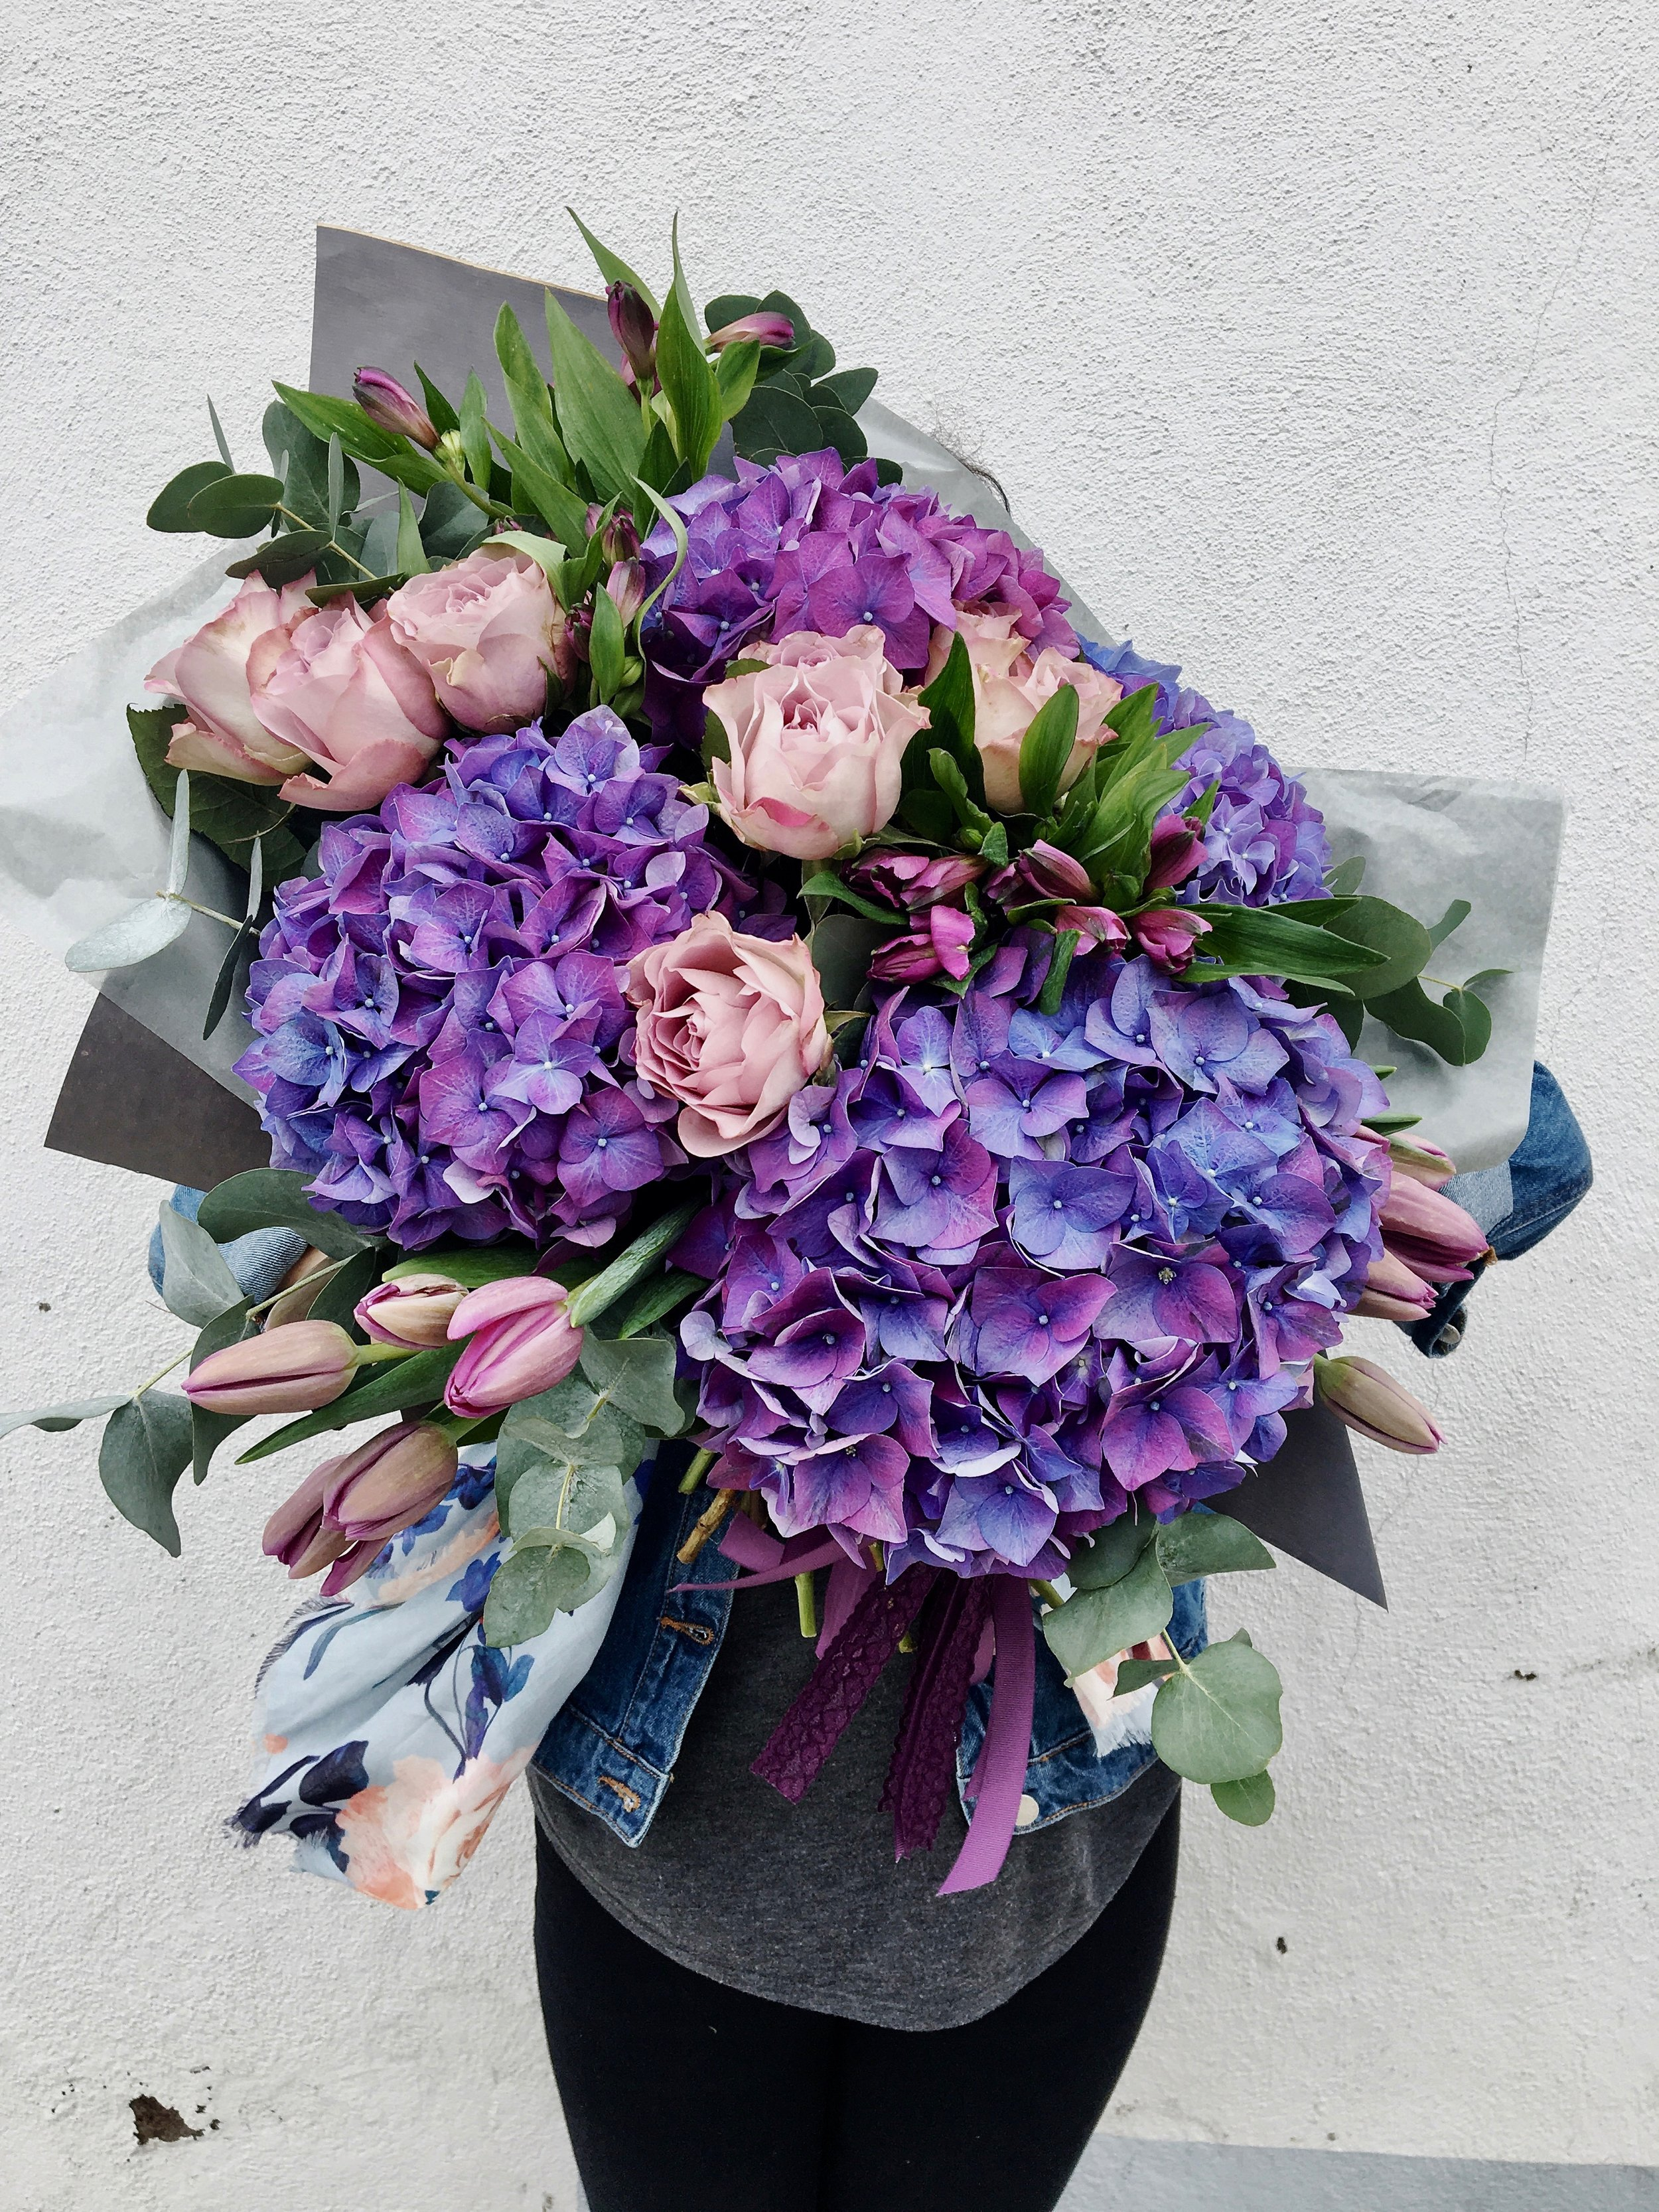 bespoke bouquet delivery starting from £75.00 - blooms for BIG moments…order something fabulous here.